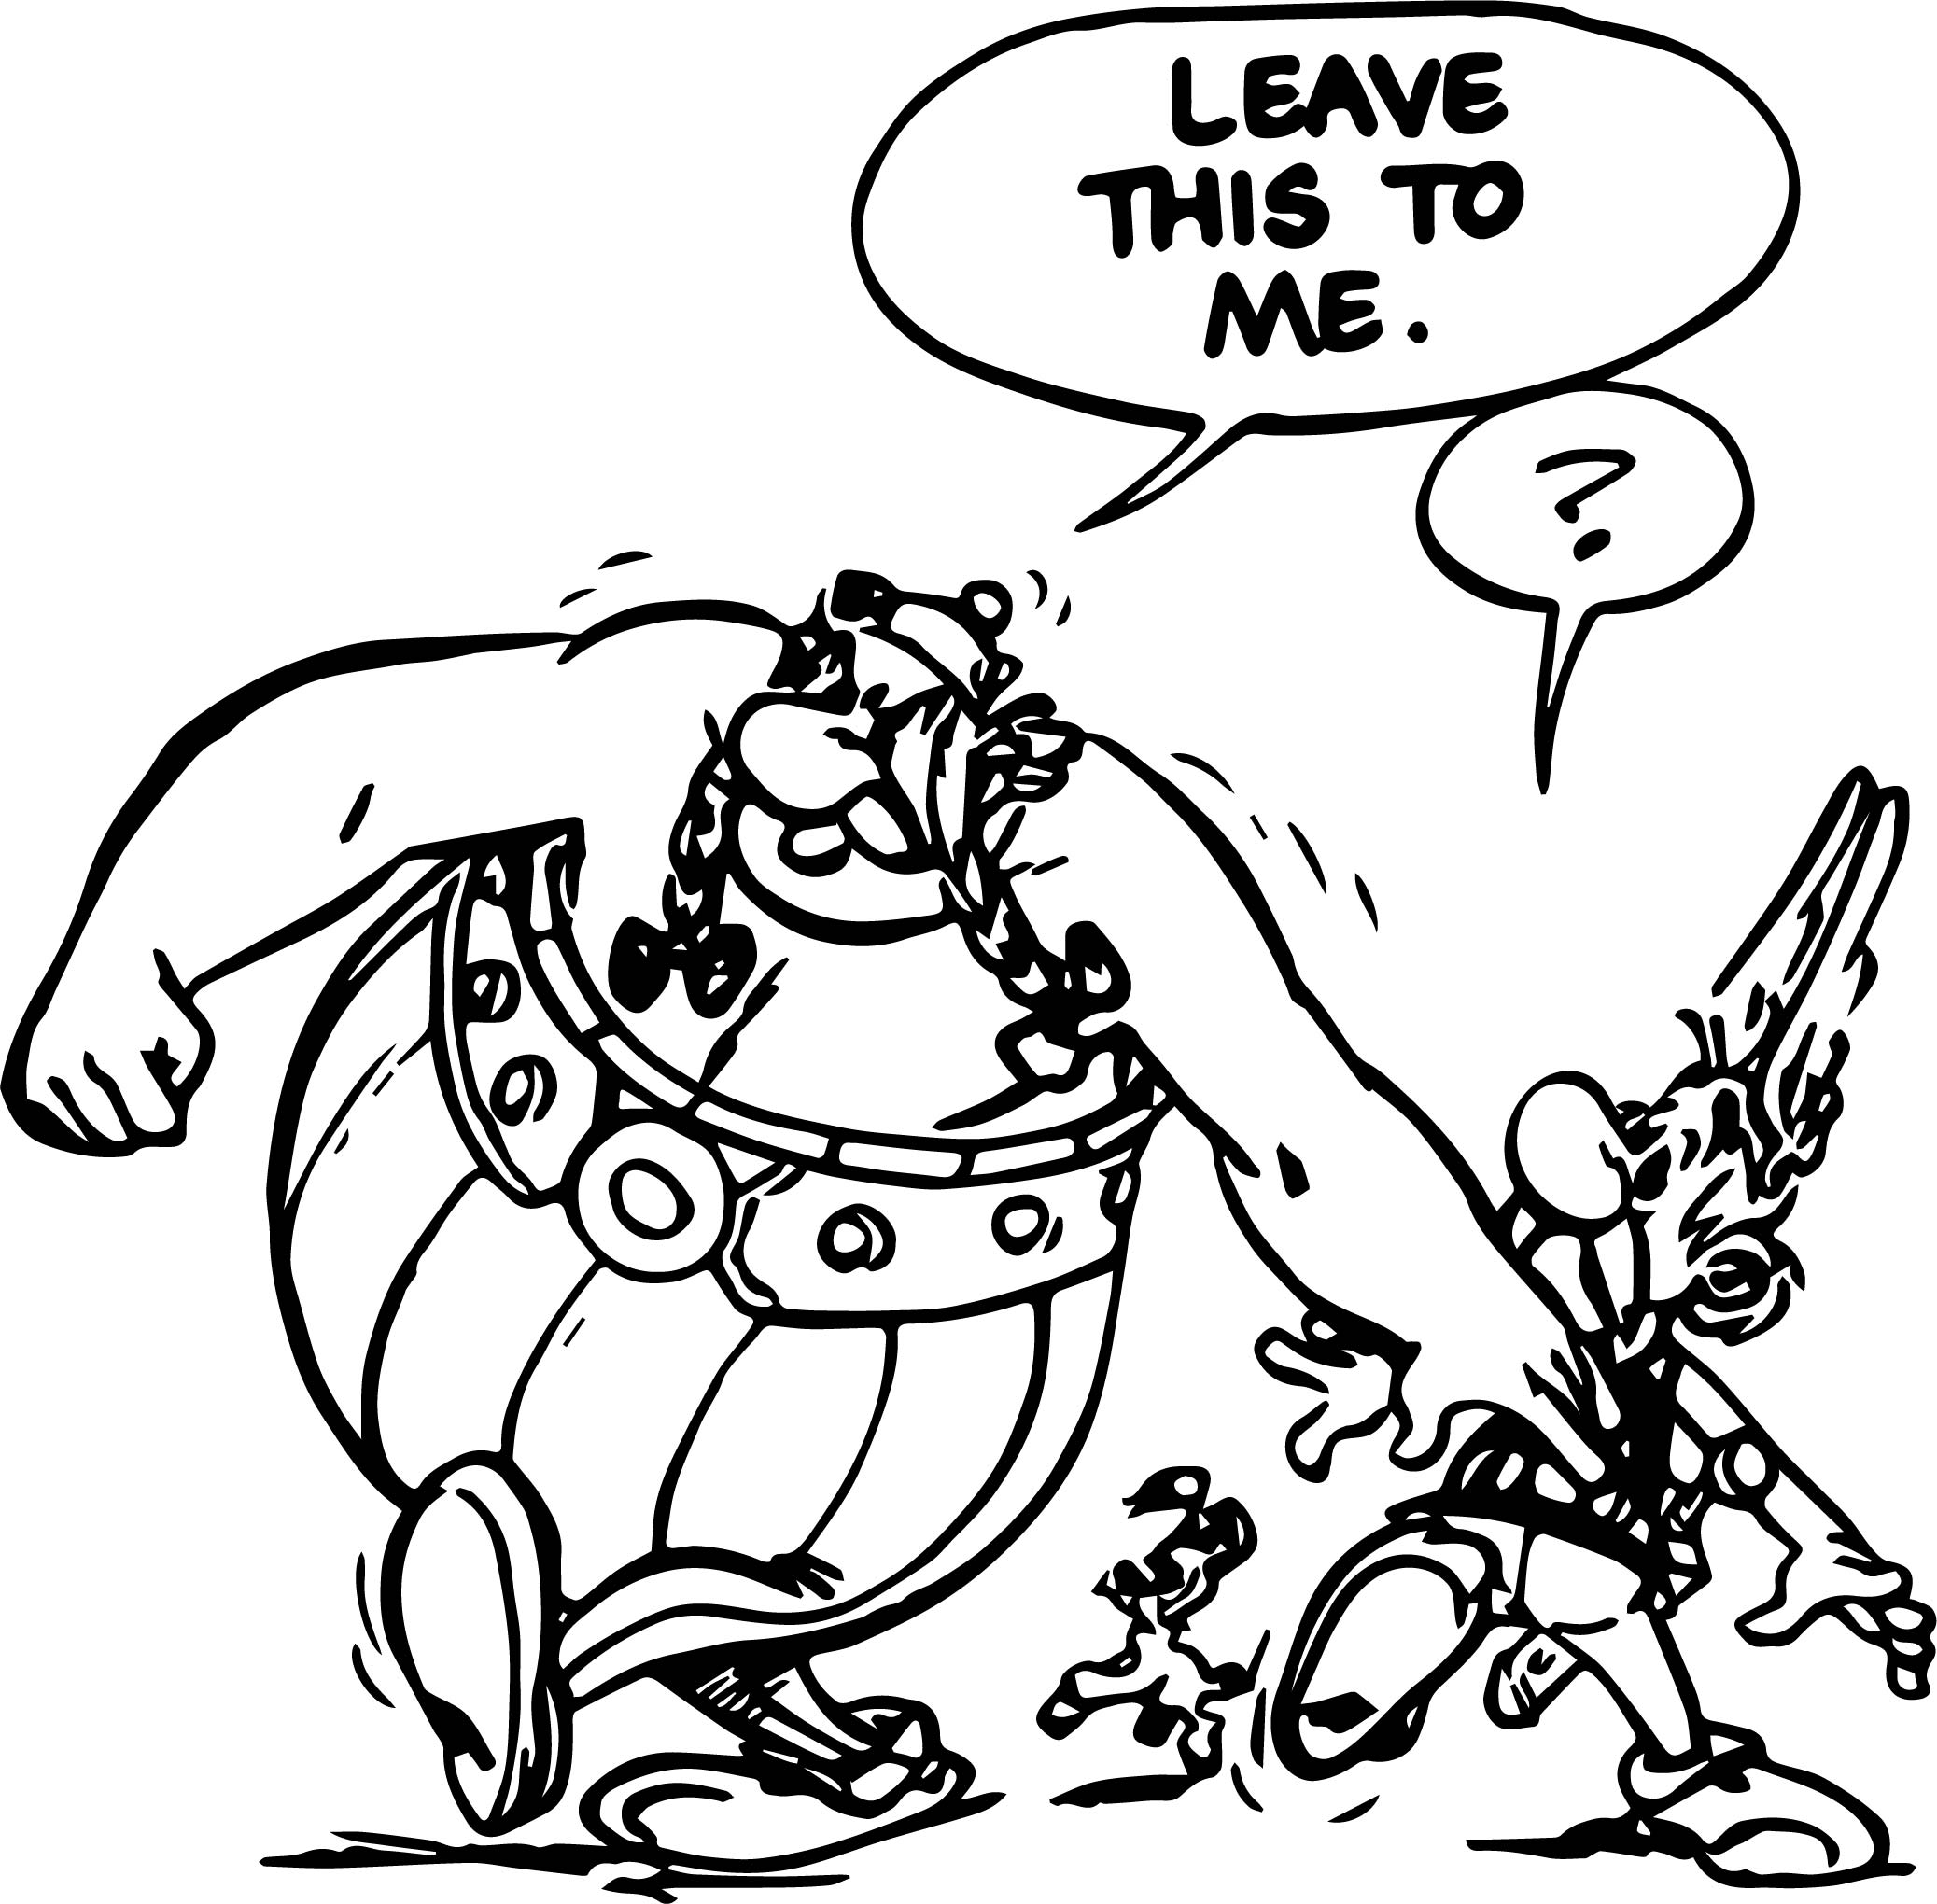 Asterix And Obelix Leave This To Me Coloring Page